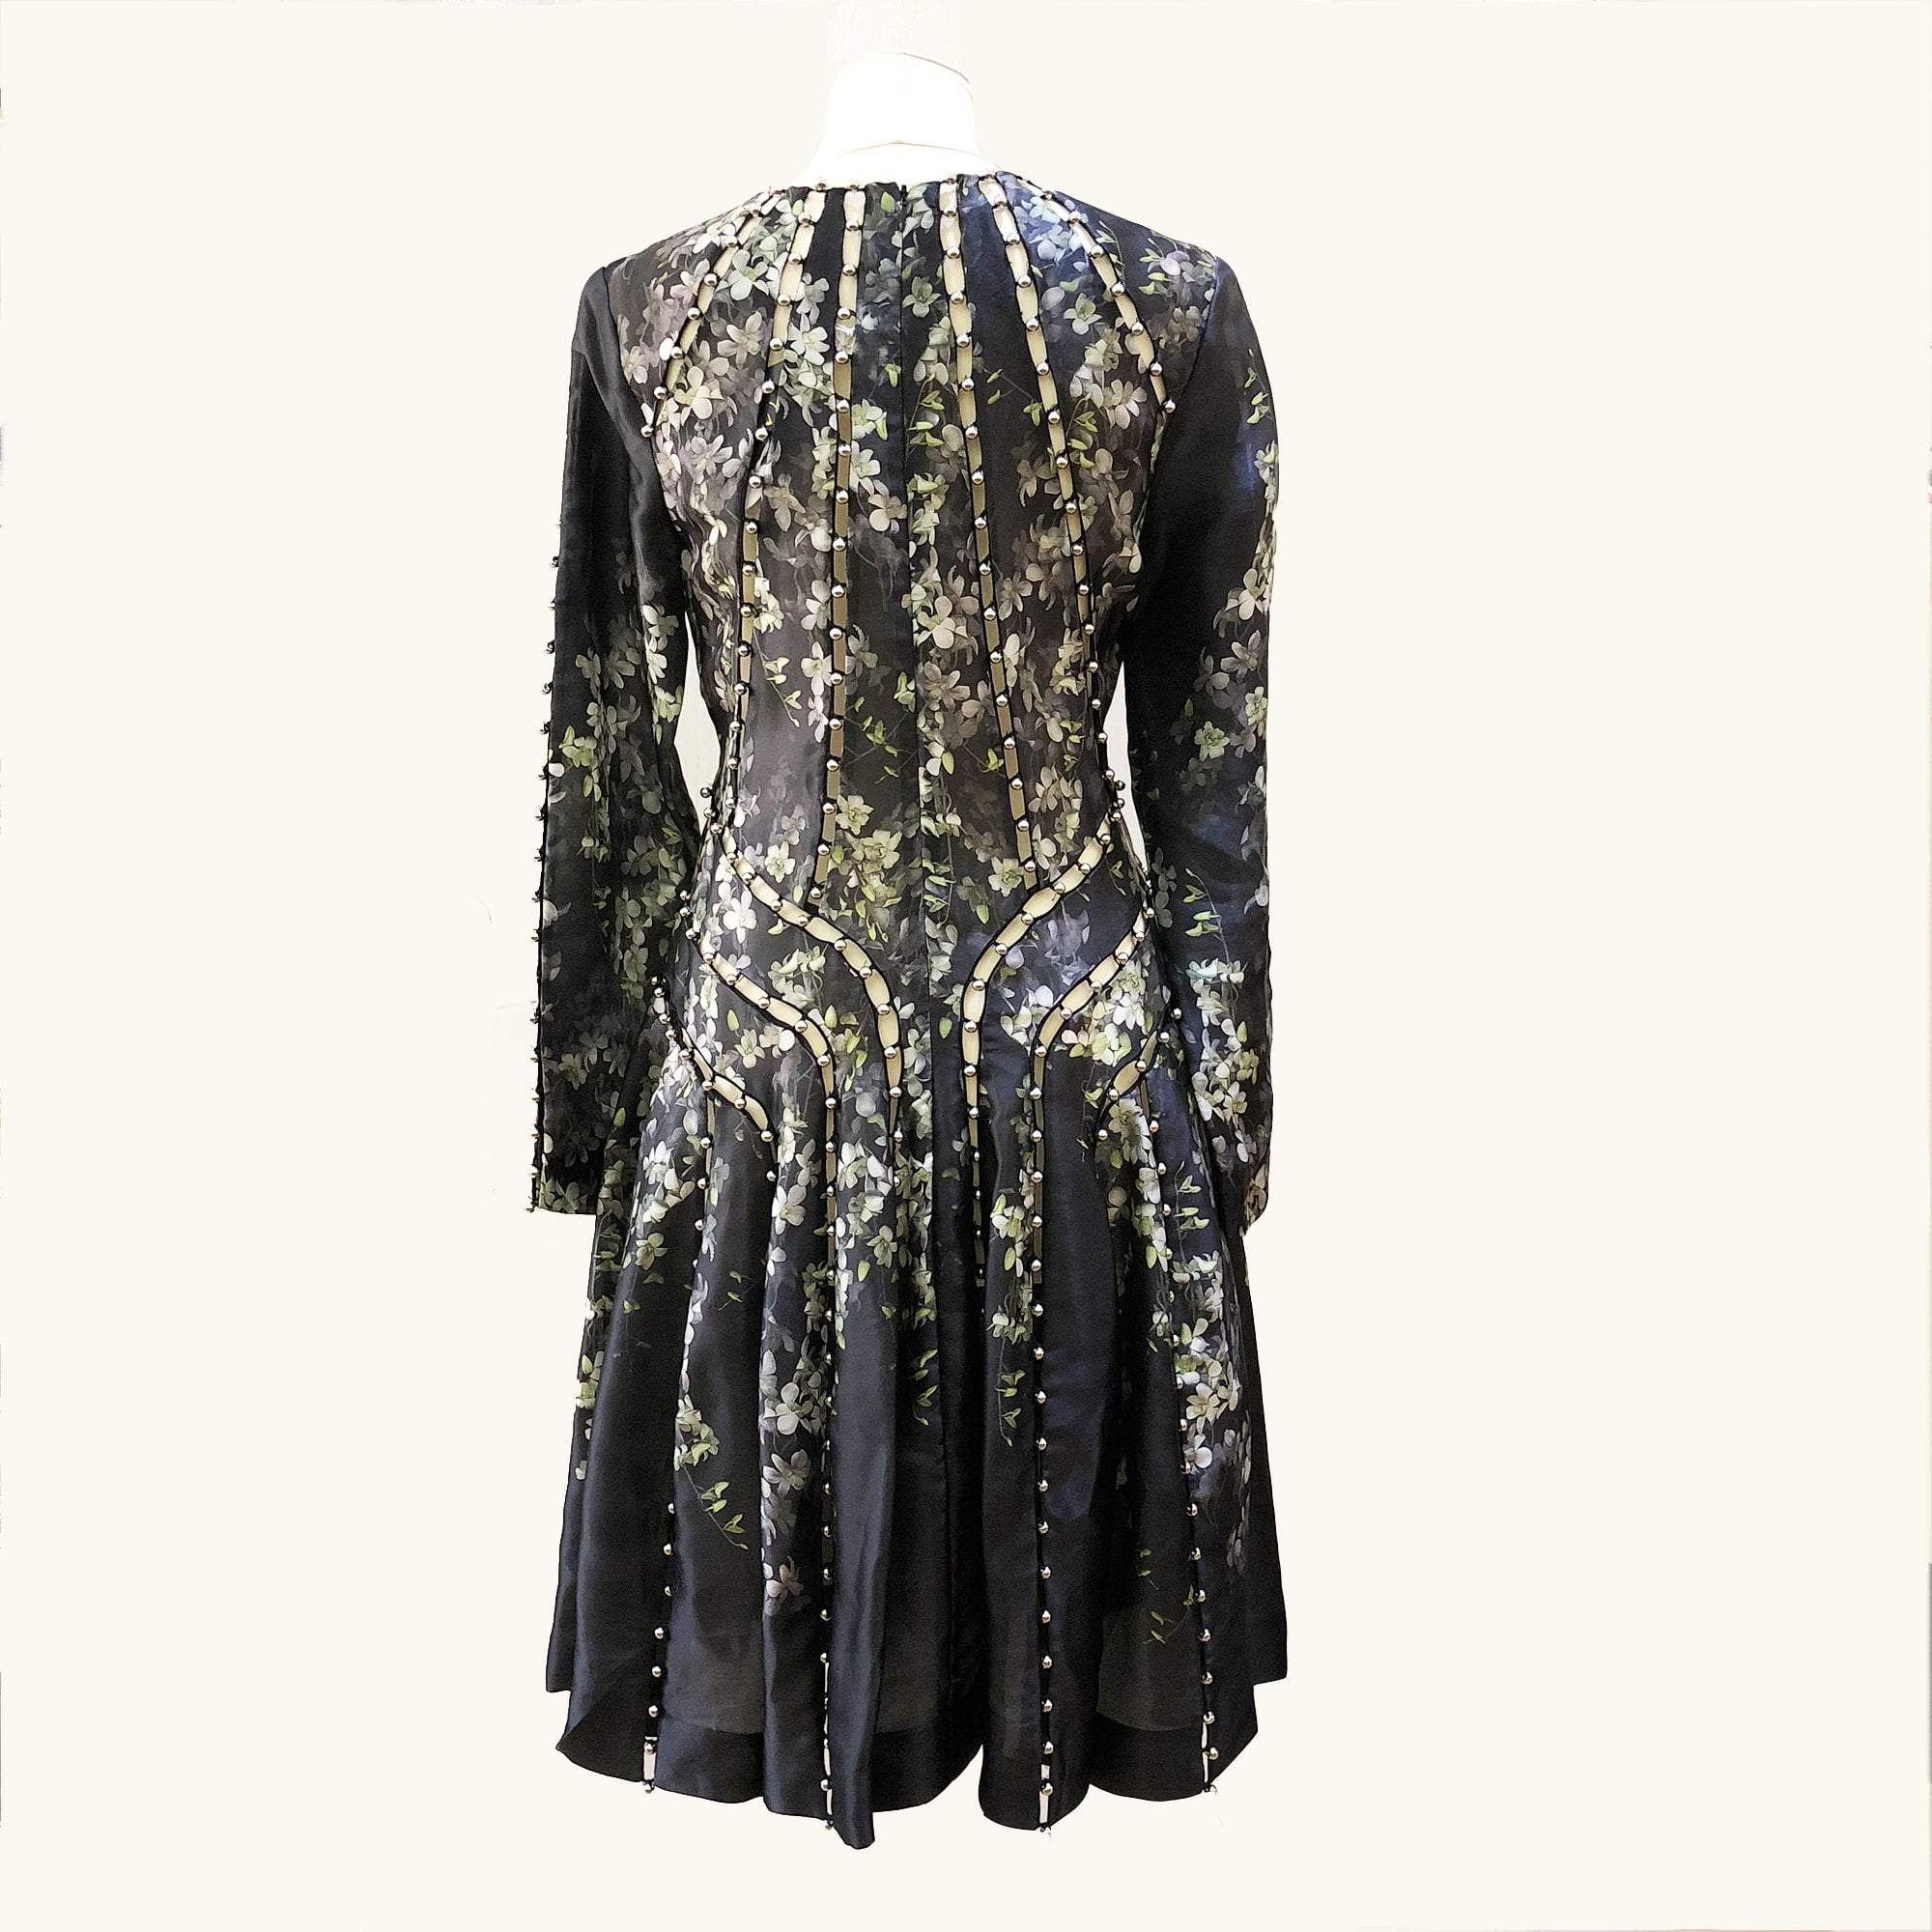 Zimmerman Tempo Orchid Dress